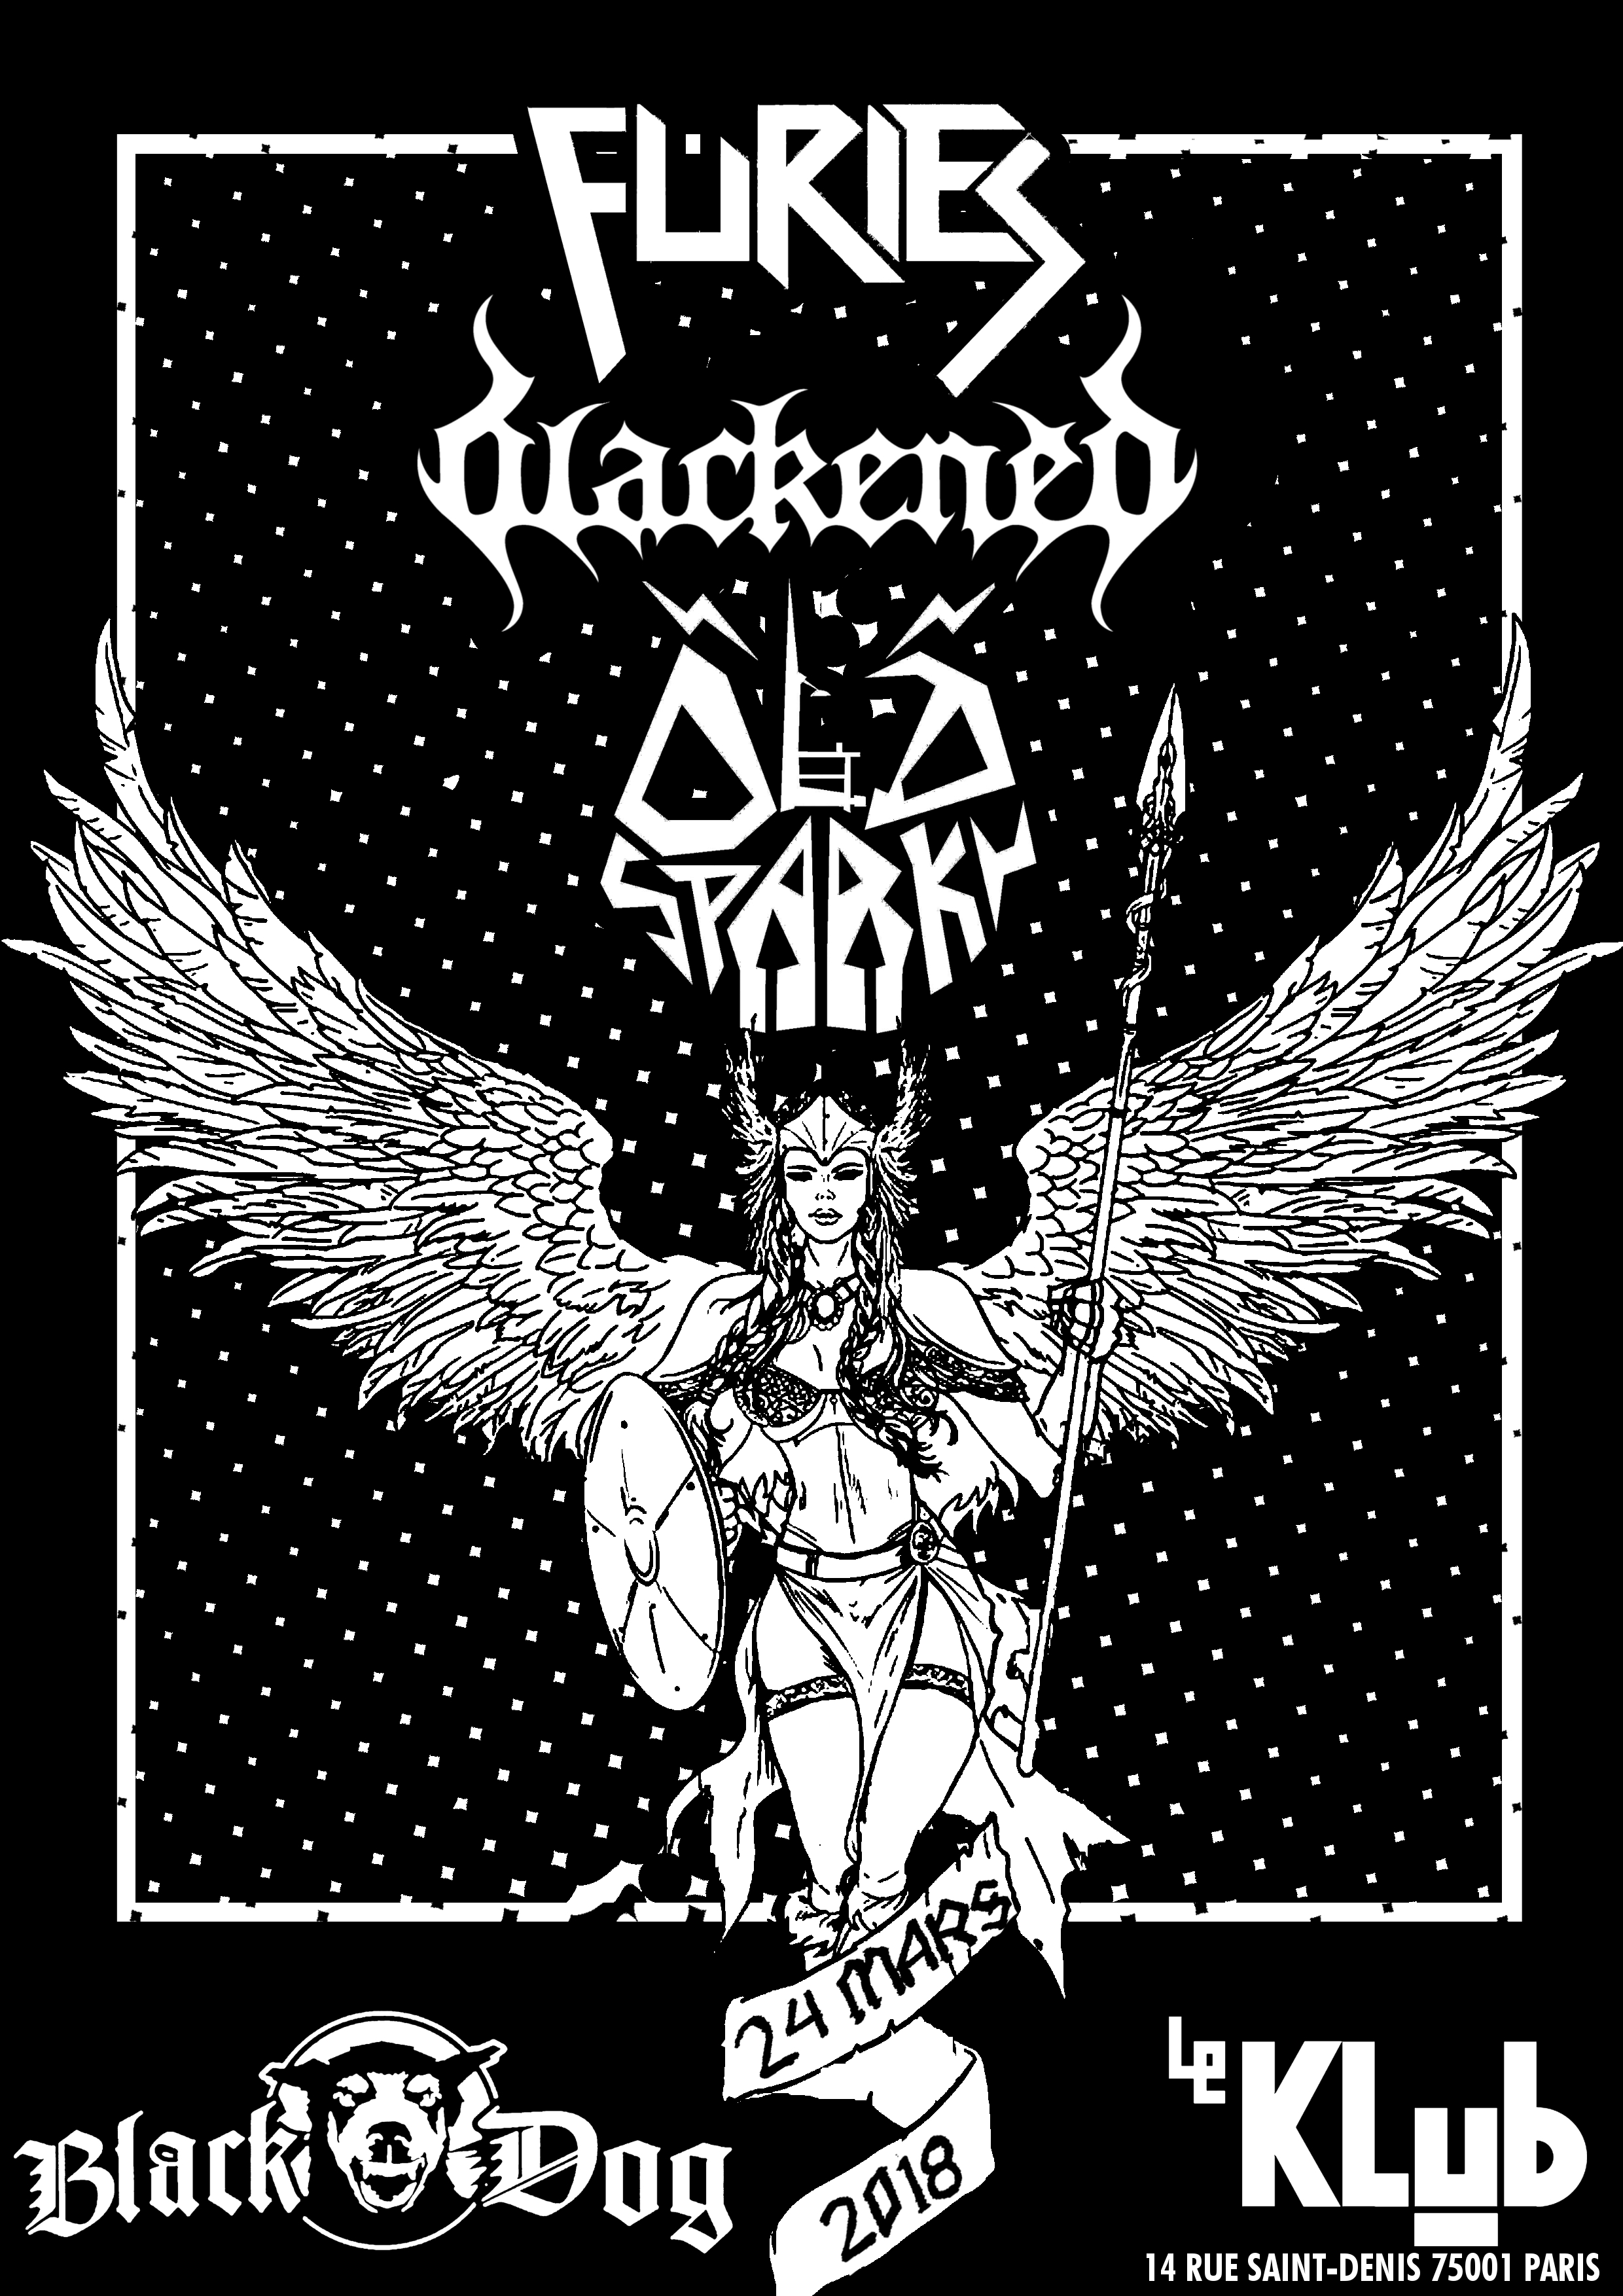 FURIES + BLACKENED + OLD SPARKY ■ 24.03